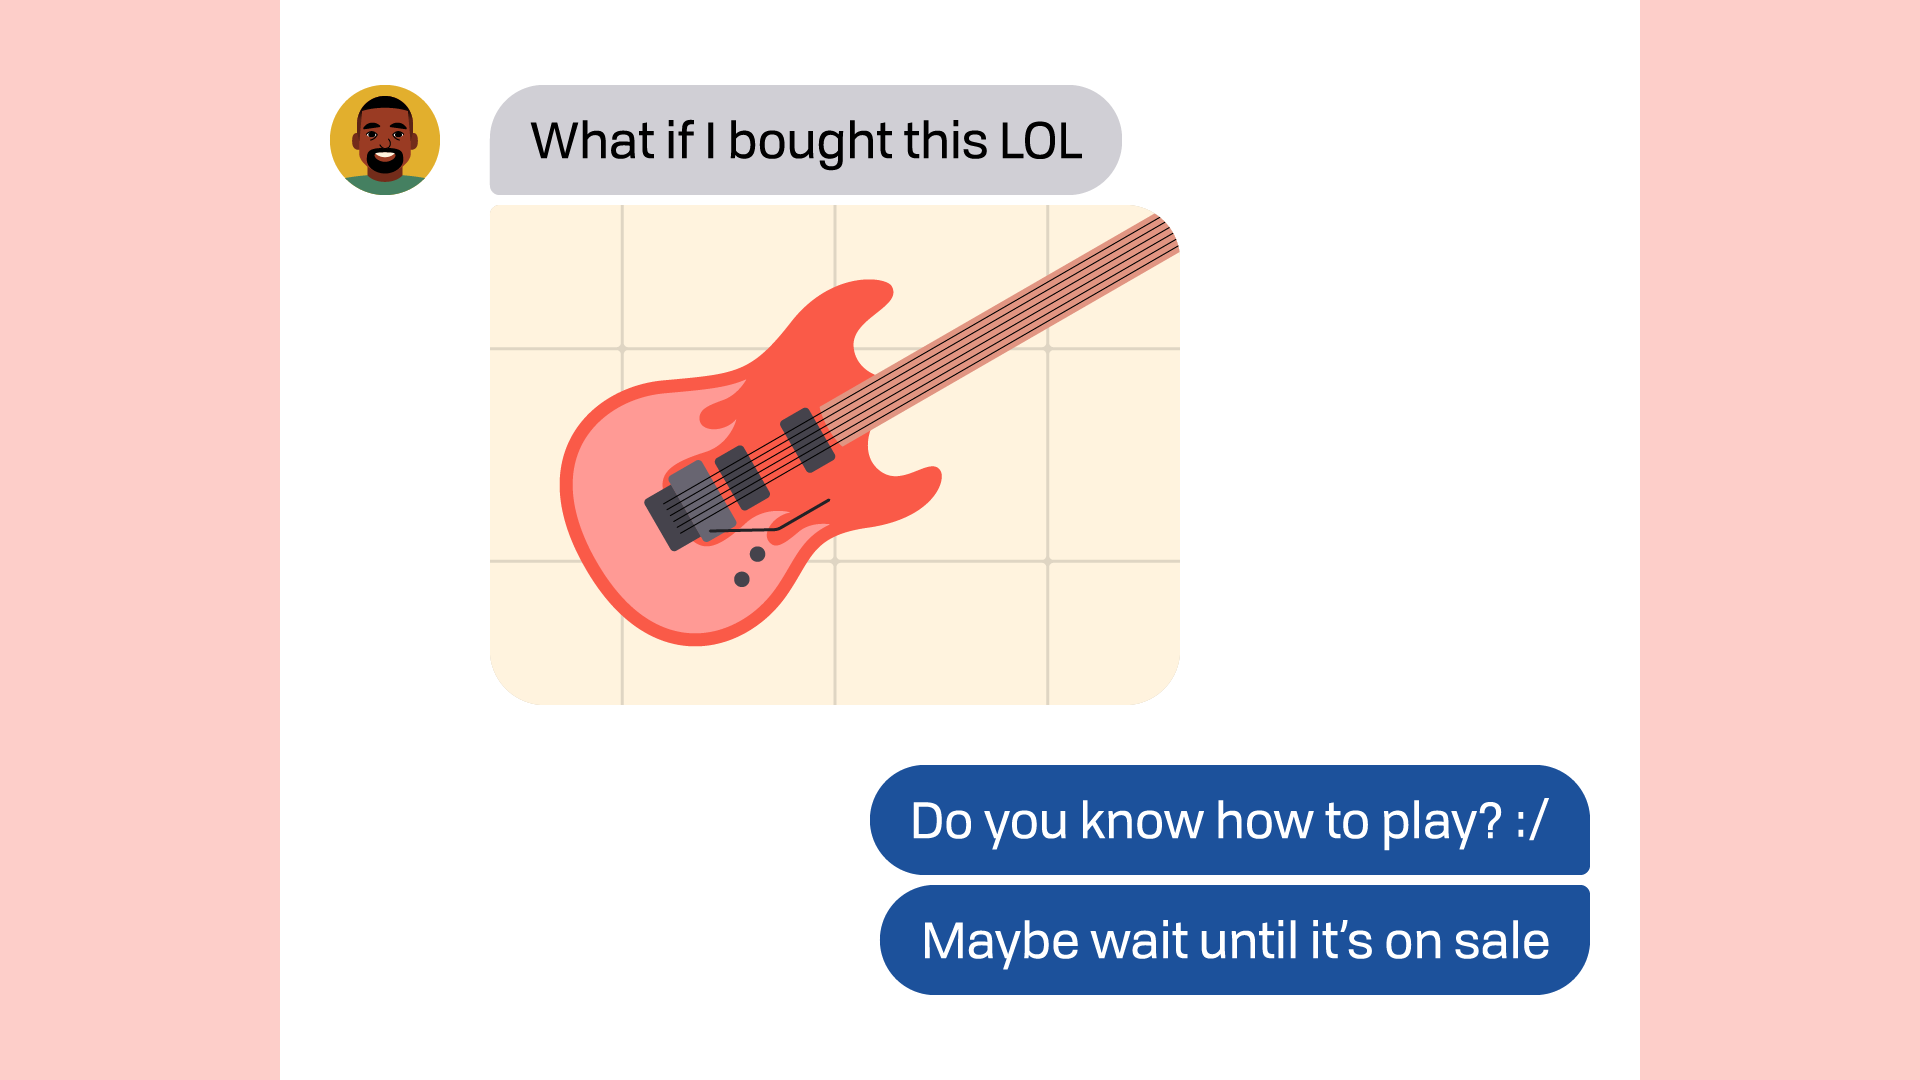 """chat conversation - friend: """"what if i bought this lol"""" / you: """"do you know how to play? maybe wait until it's on sale"""""""